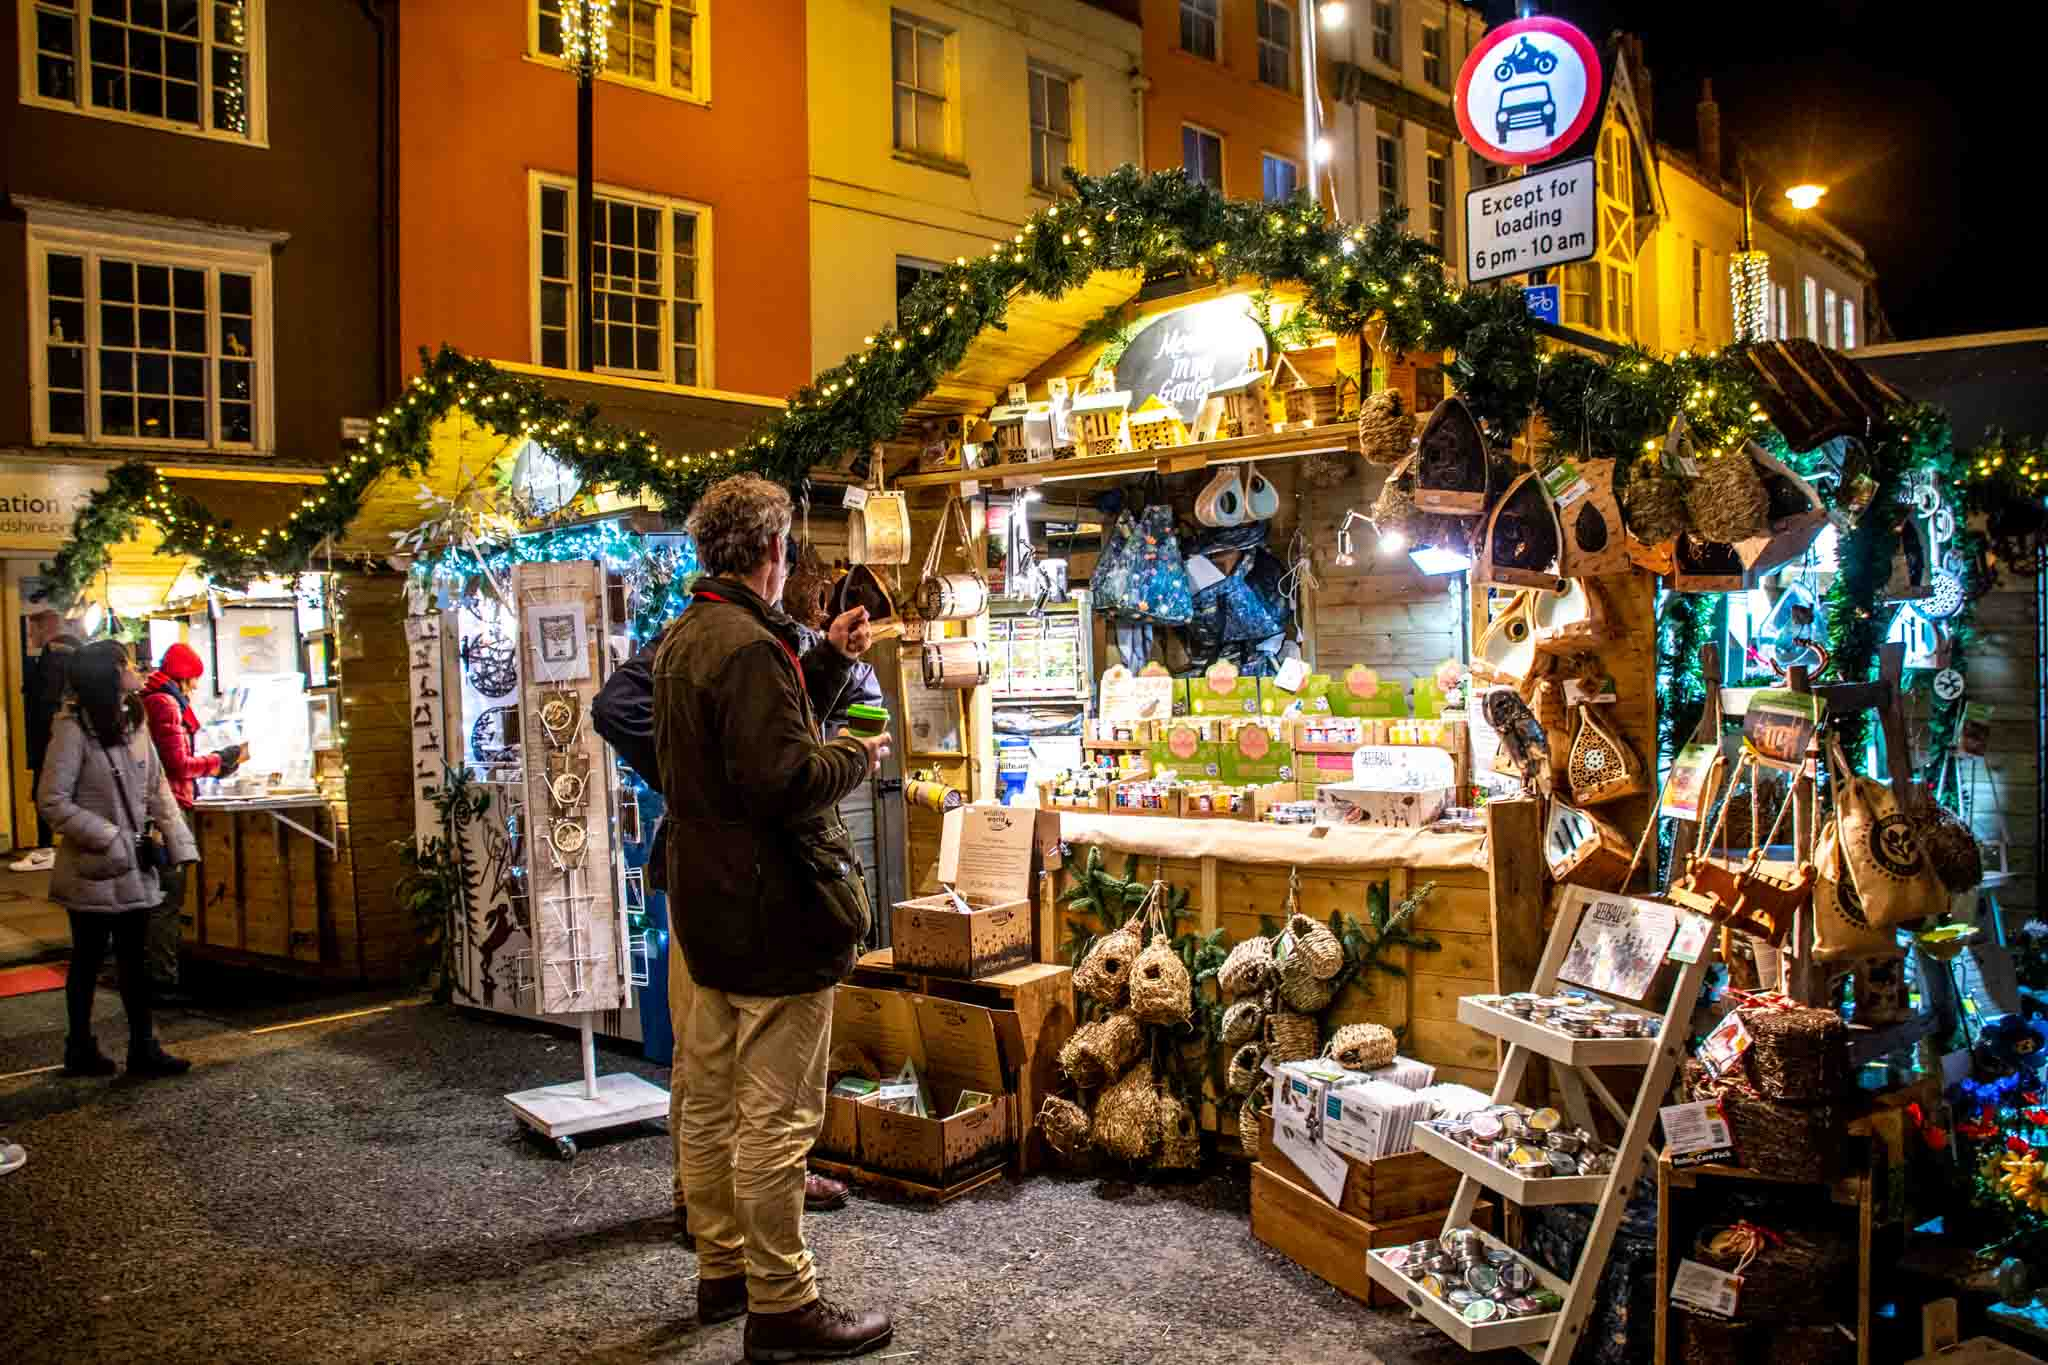 Shoppers in front of wooden chalets selling Christmas gifts